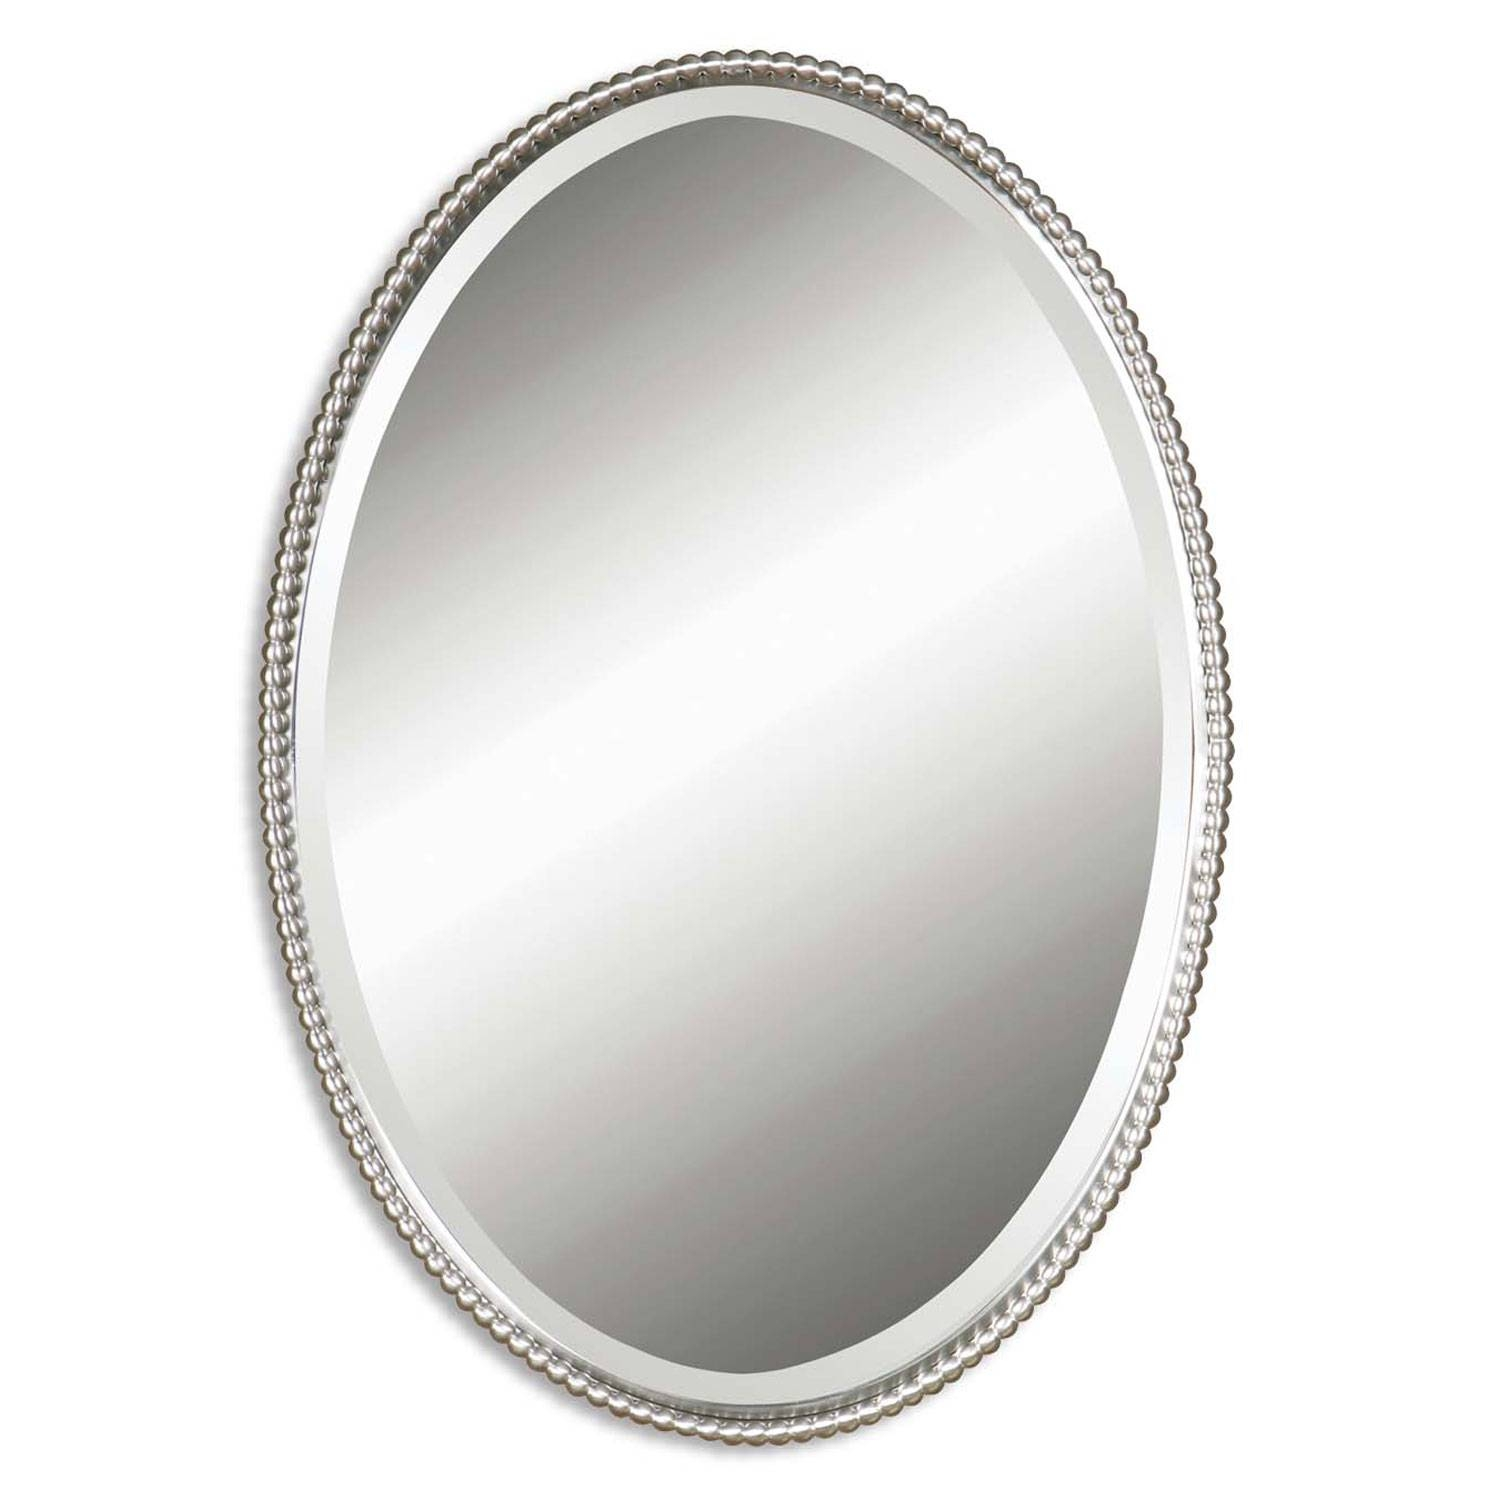 Sherise Brushed Nickel Oval Mirror Uttermost Wall Mirror Mirrors intended for Silver Oval Mirrors (Image 19 of 25)